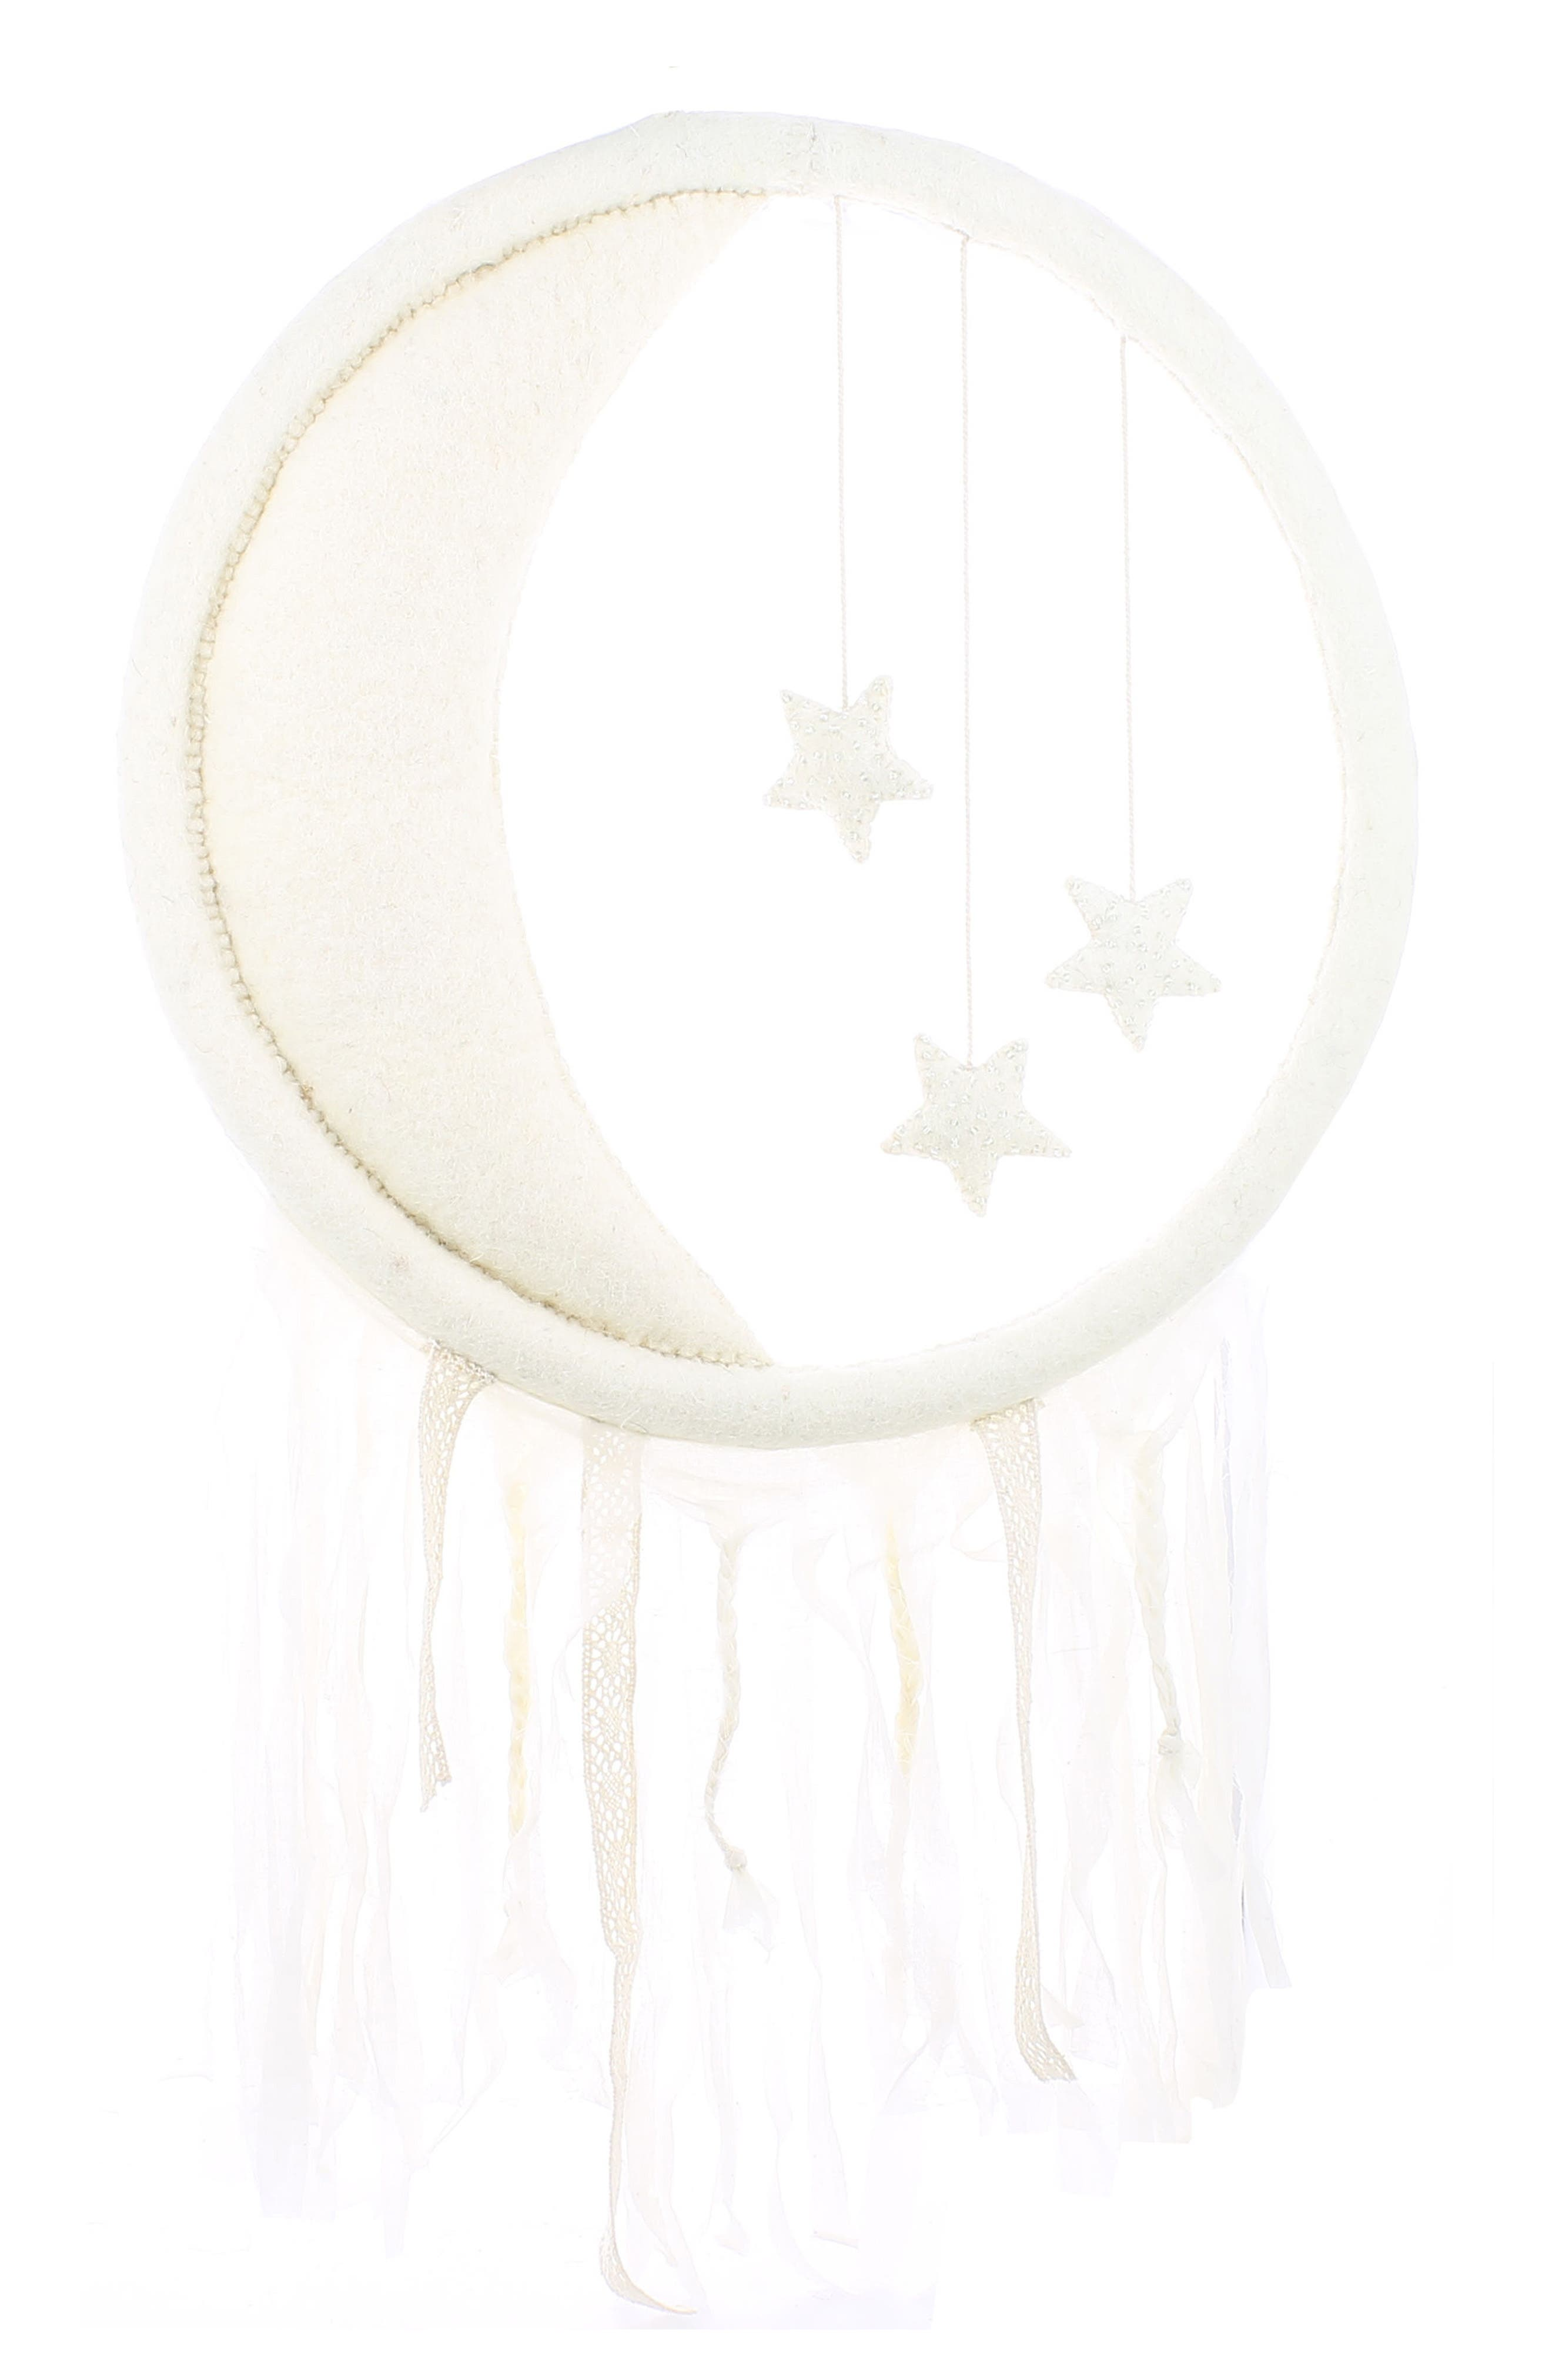 Alternate Image 1 Selected - Fiona Walker Crescent Moon & Beaded Star Wall Decoration